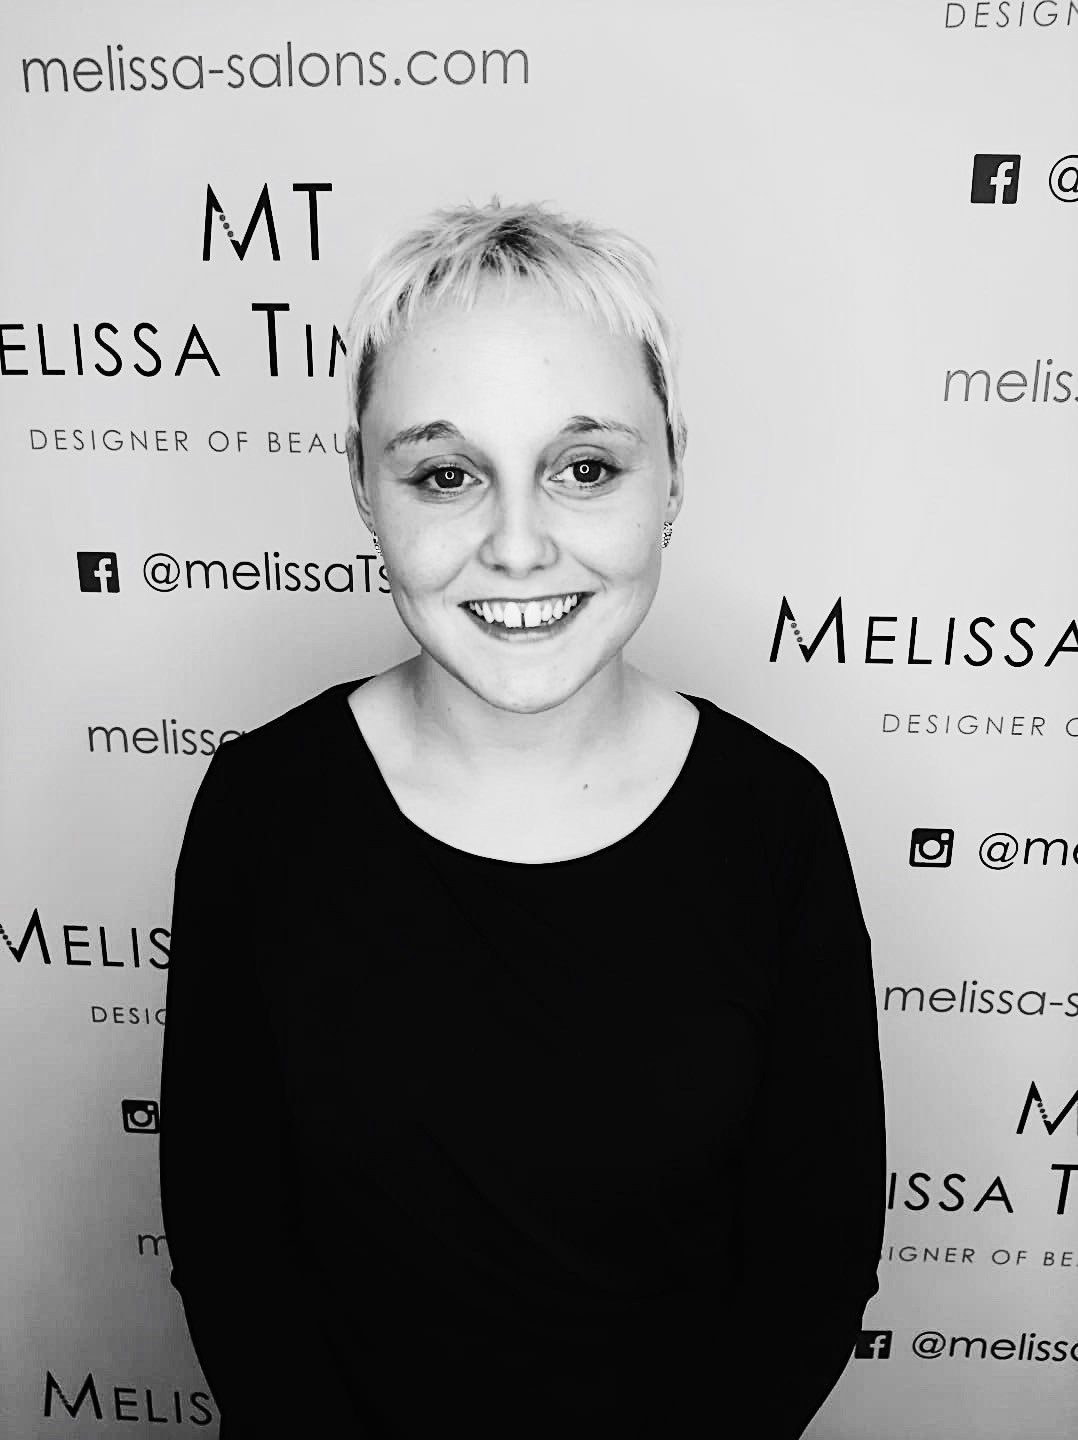 Melissa Salons Award Winning Manchester Team